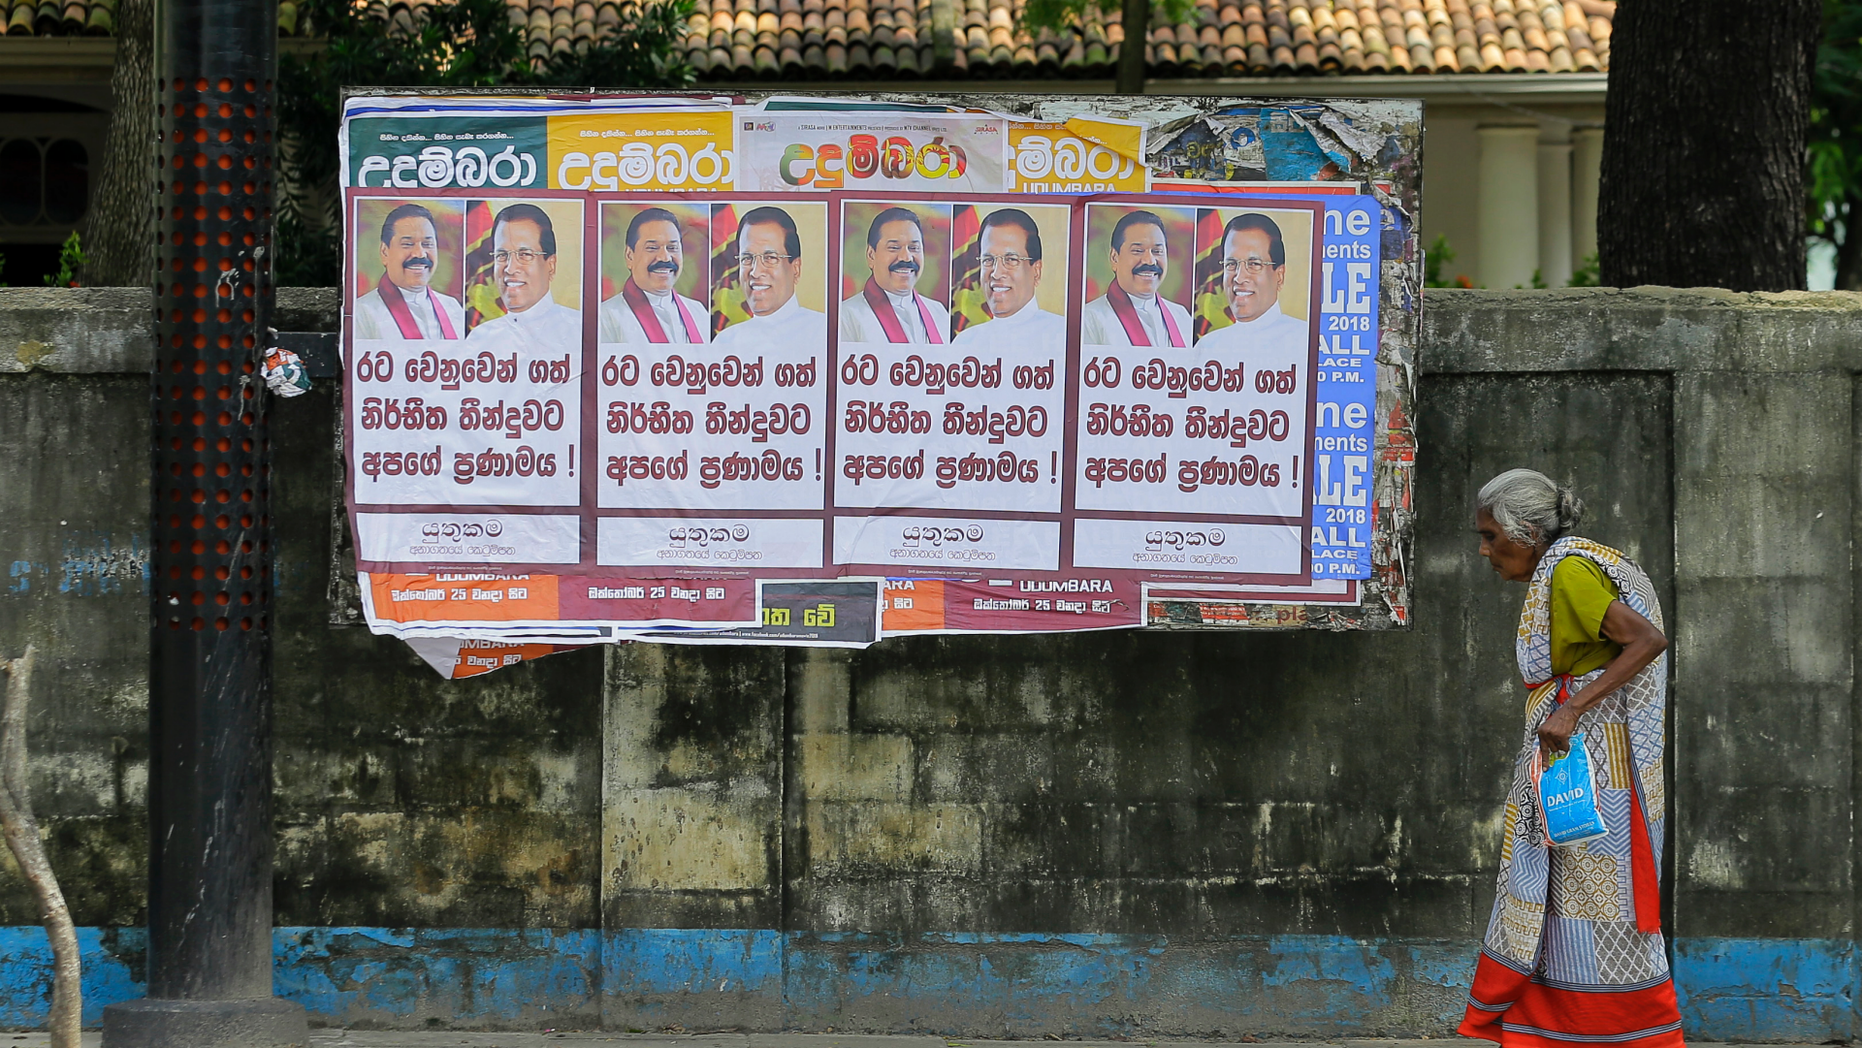 """A Sri Lankan woman walks past a notice board covered with posters carrying portraits of President Maithripala Sirisena and newly appointed Prime Minster Mahinda Rajapaksa at a street in Colombo, Sri Lanka, Sunday, Oct. 28, 2018. Sri Lanka's president suspended Parliament even as the prime minister he fired the previous day claimed he has majority support, adding to a growing political crisis in the South Asian island nation. Posters read """" Our respect for the decision took on behalf of the country."""" (AP Photo/Eranga Jayawardena)"""